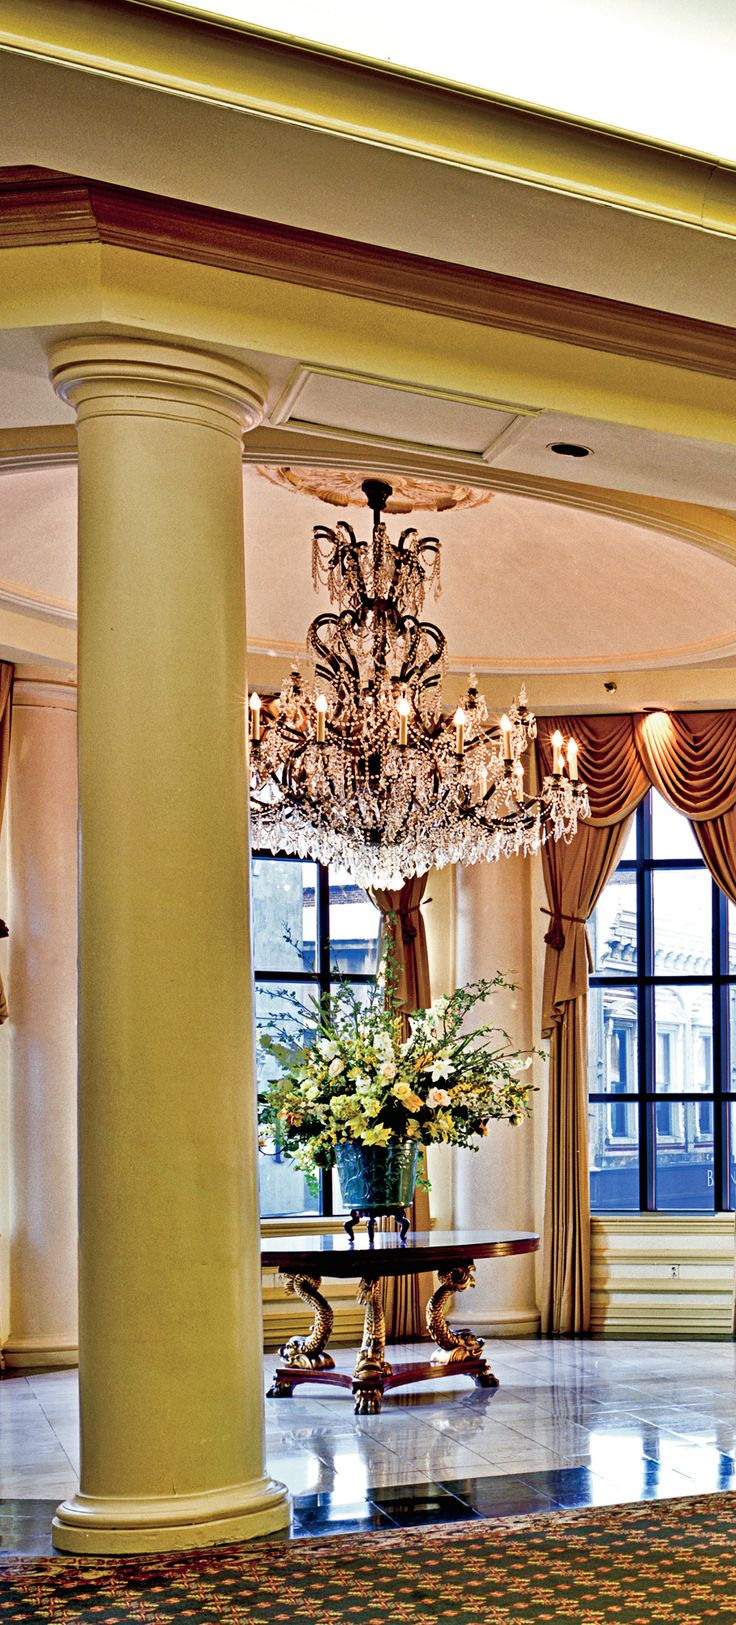 Traditional grand southern decor.